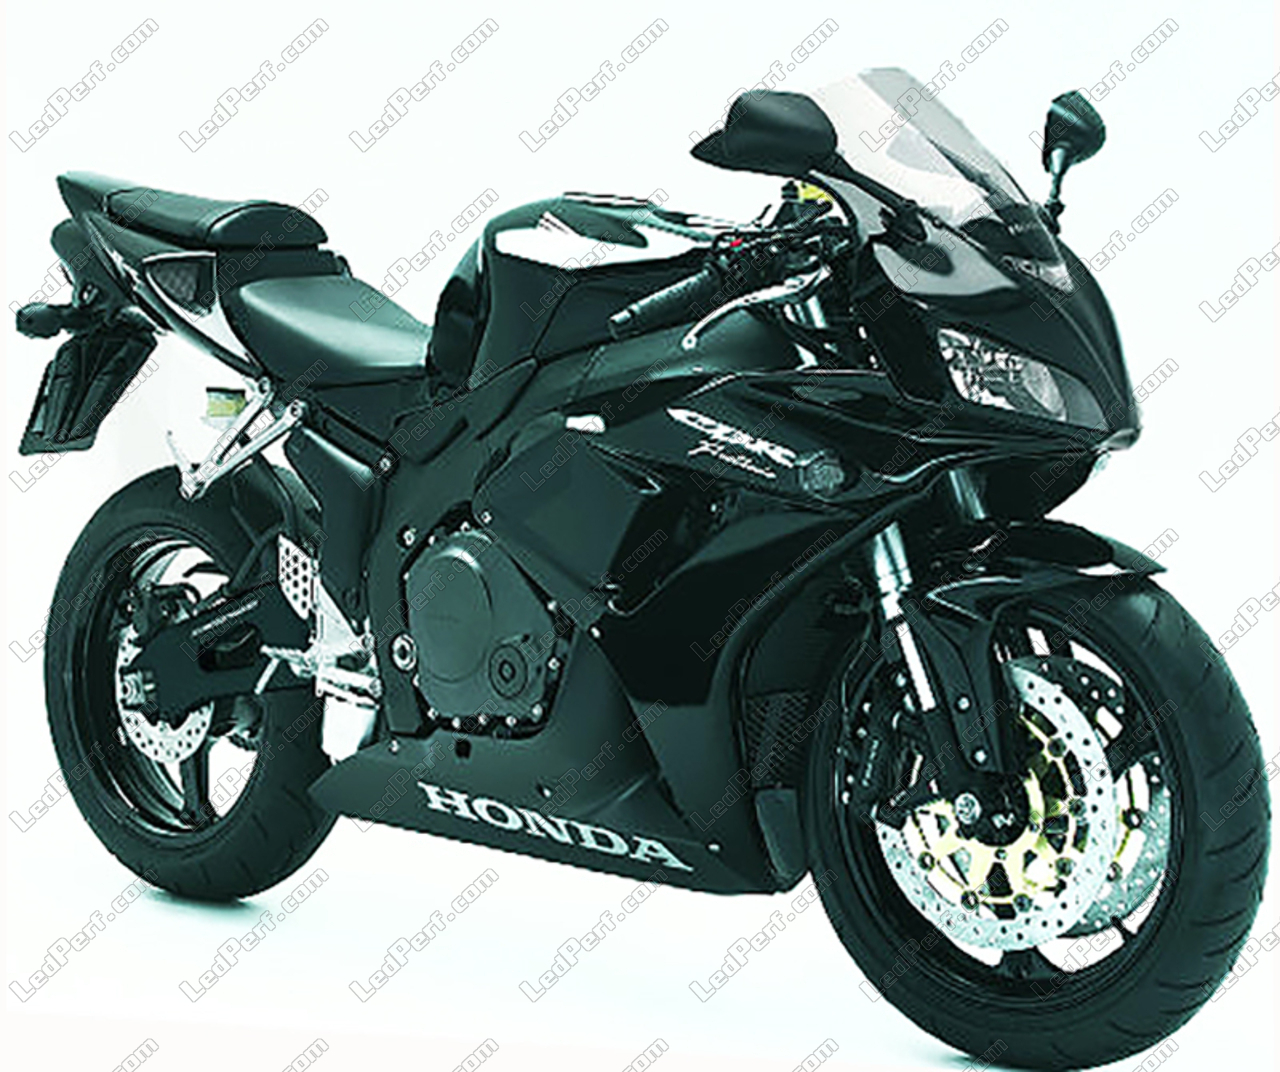 pack headlights xenon effect bulbs for honda cbr 1000 rr. Black Bedroom Furniture Sets. Home Design Ideas